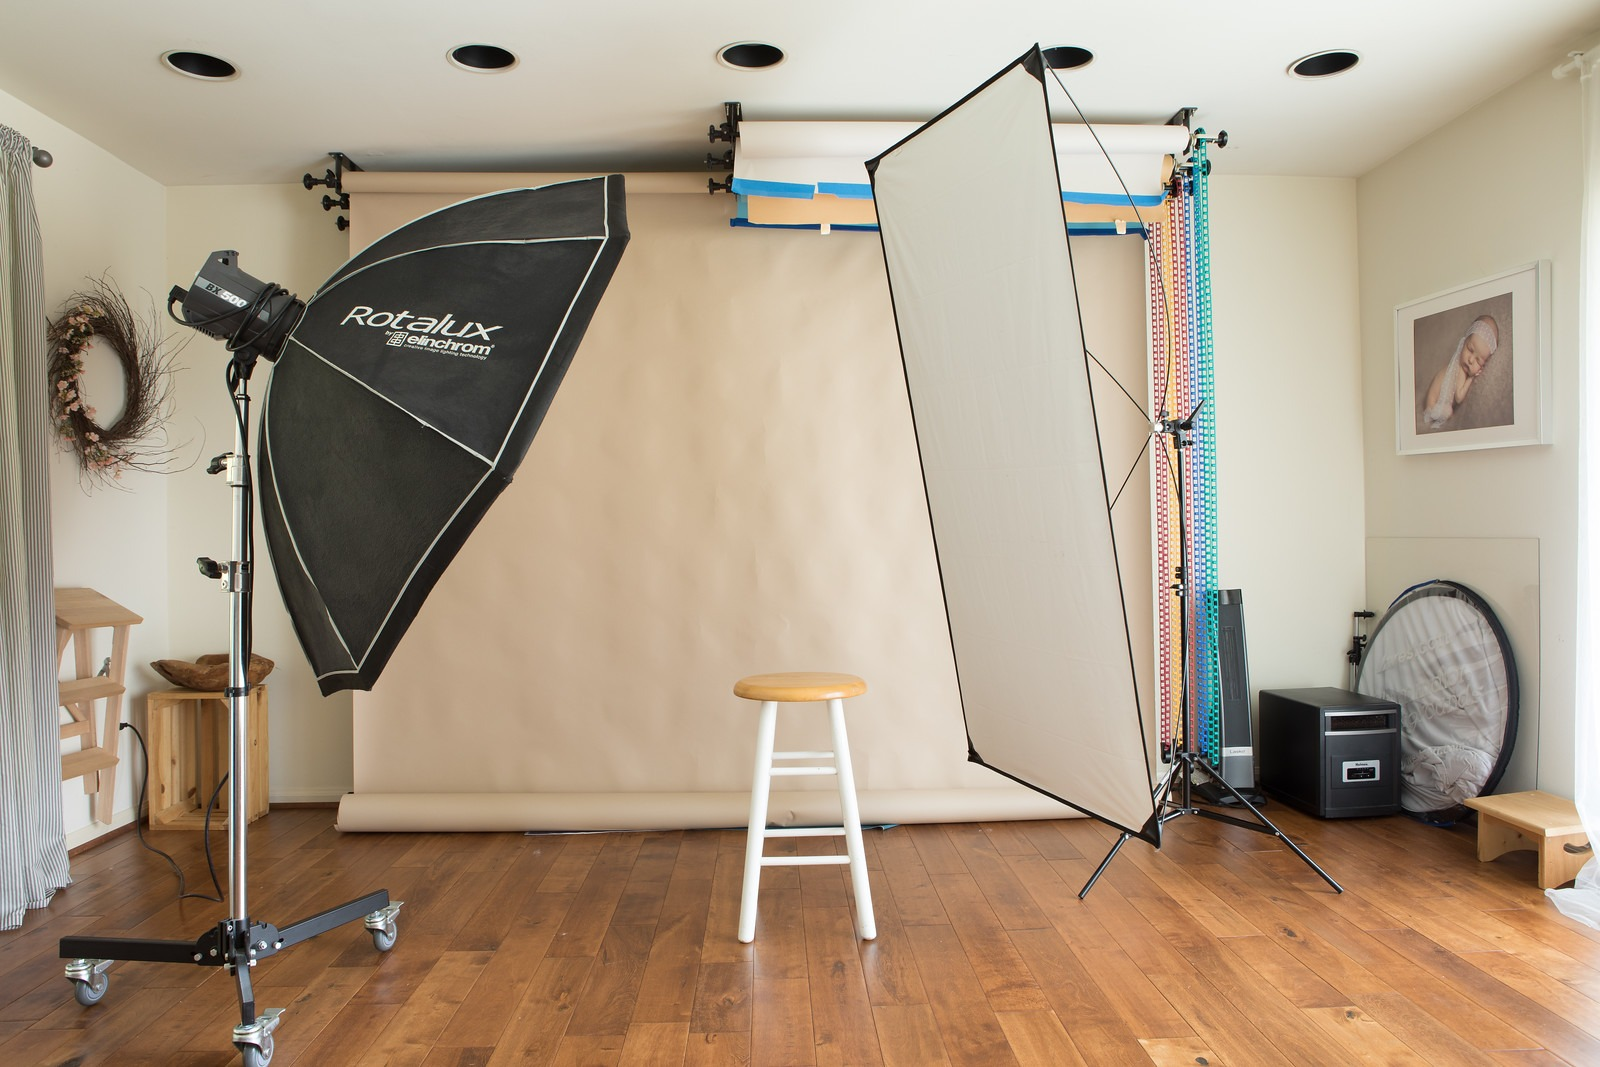 Portrait Photography Studio Set